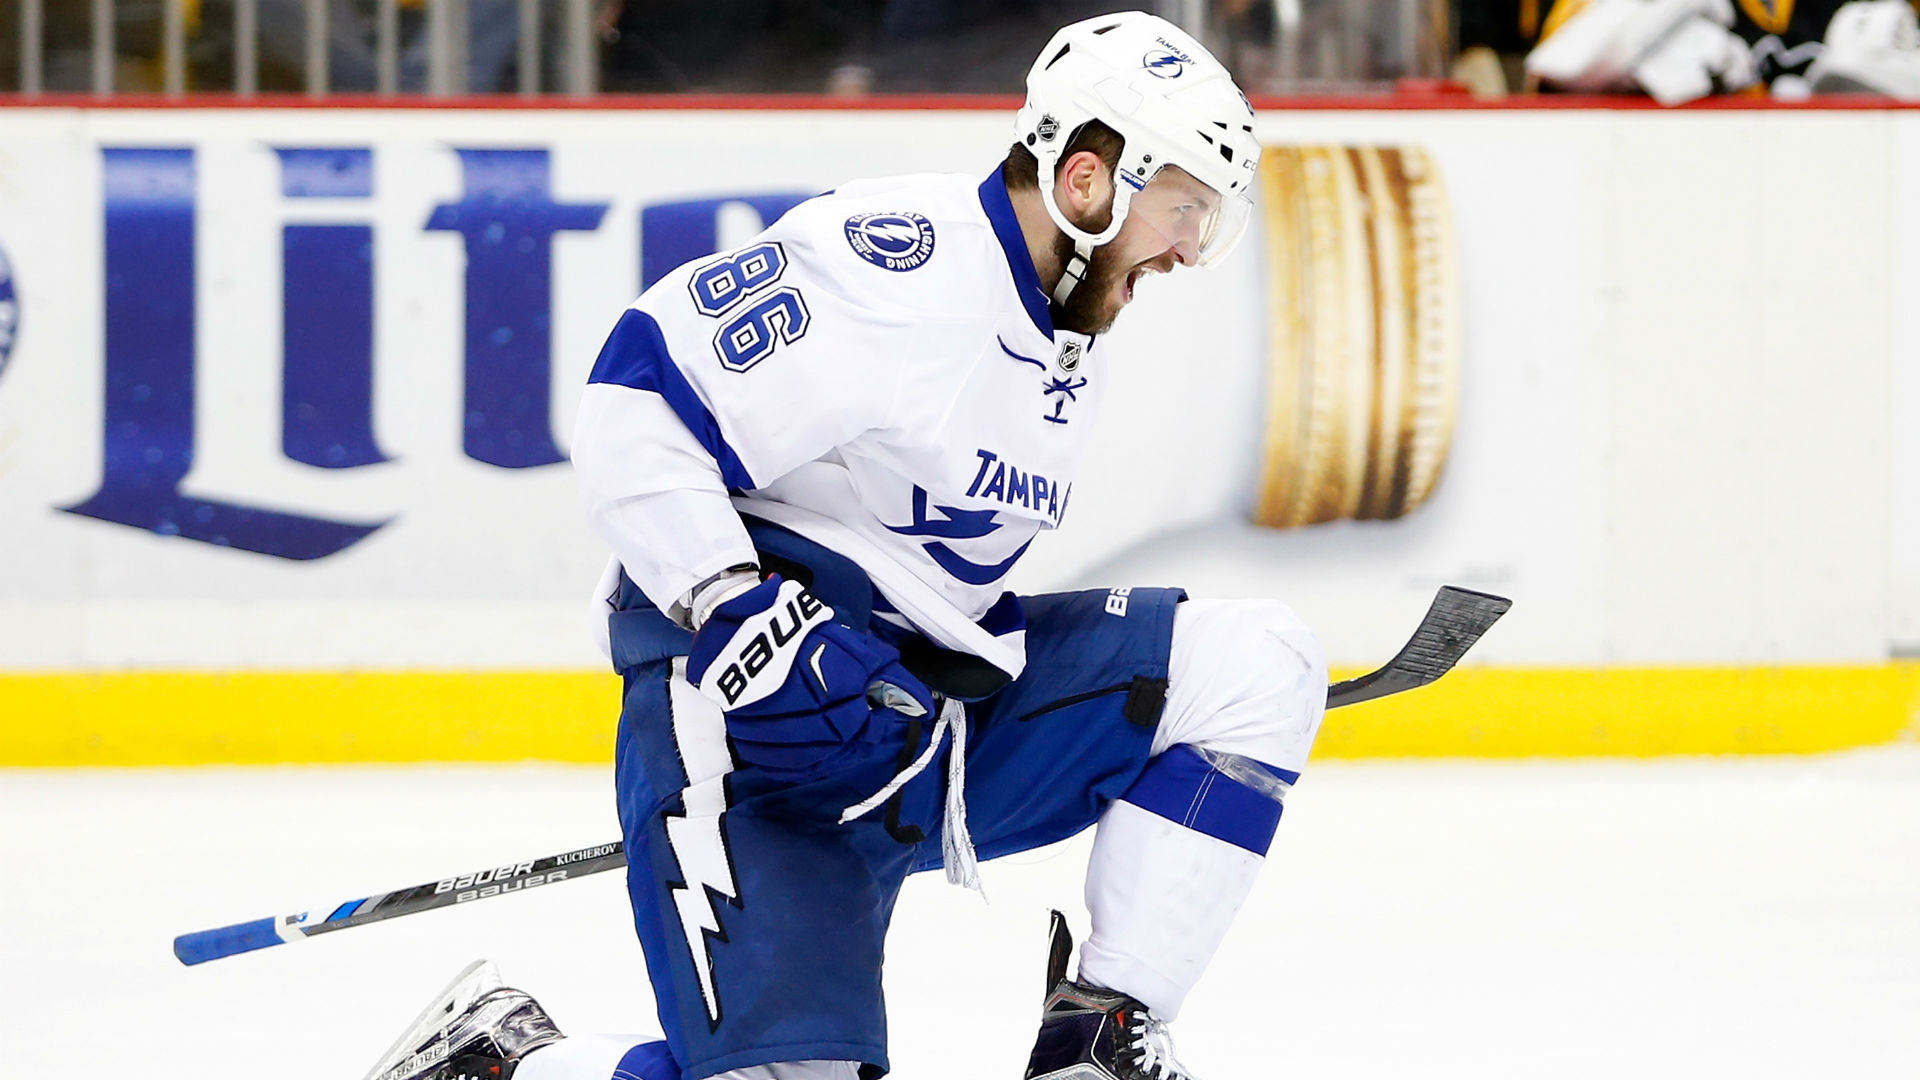 Kucherov scores twice, Lightning beat Red Wings 3-2